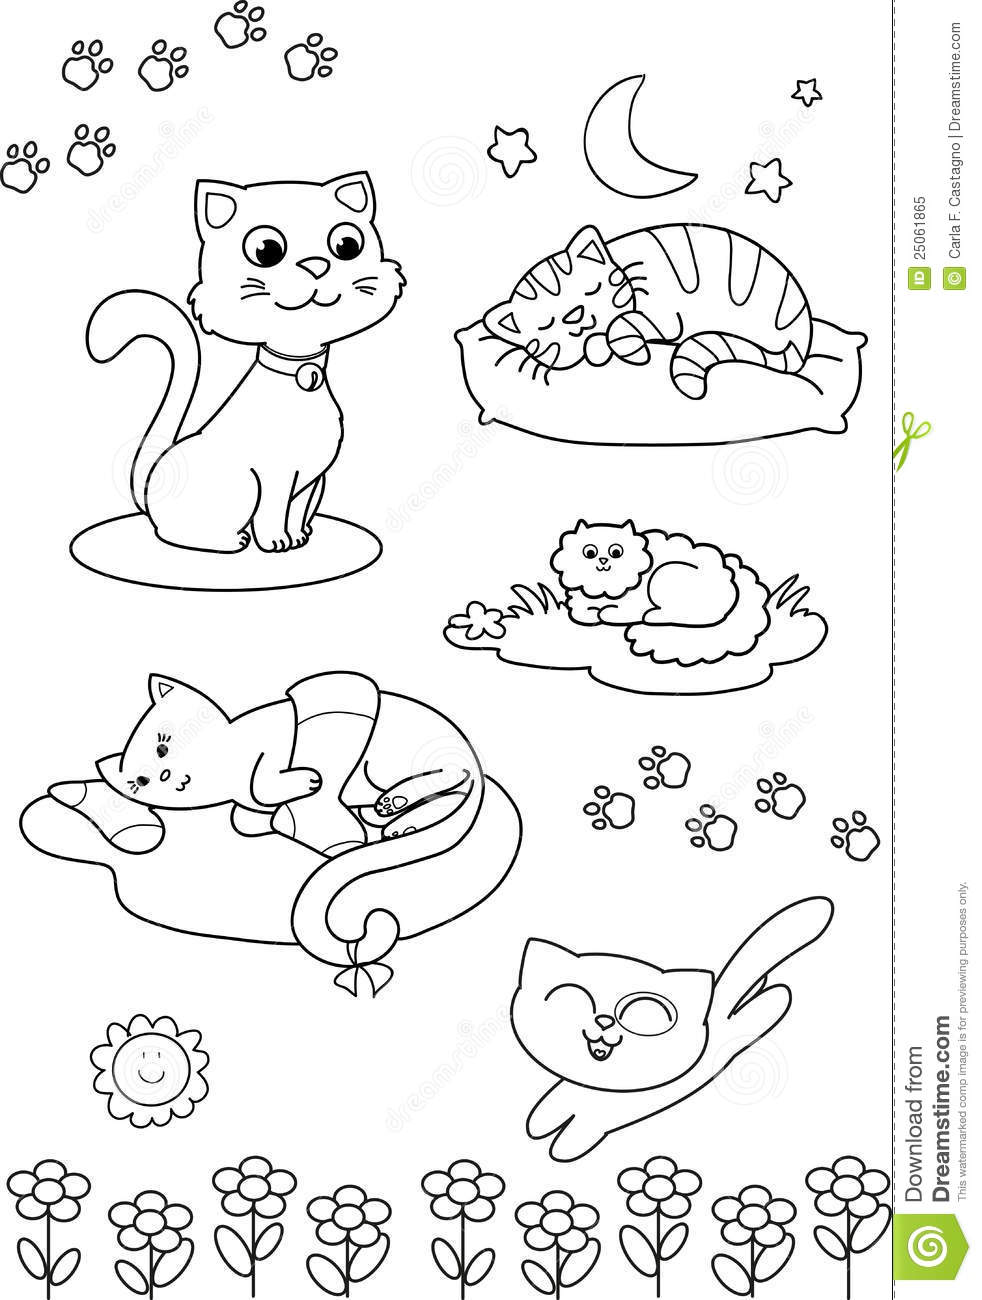 Cute Cartoon Cats Coloring Page Royalty Free Stock Photo